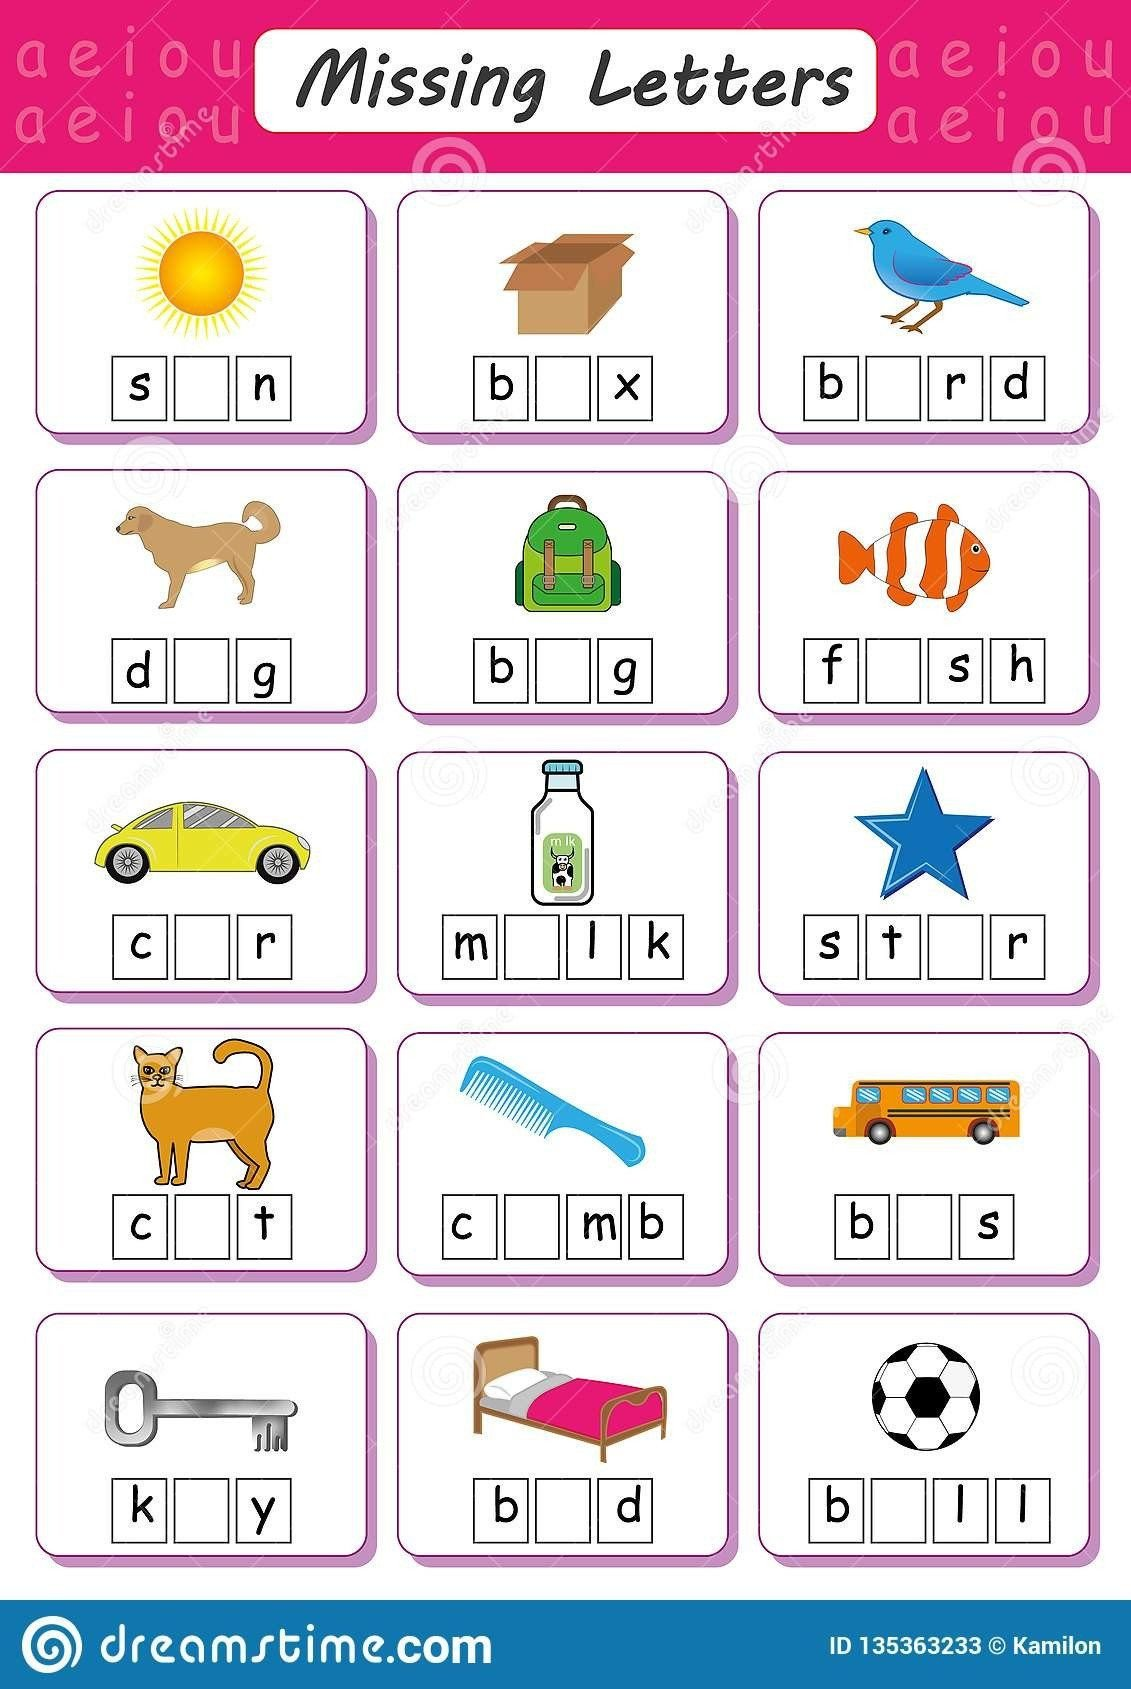 Vowel Worksheets for Kindergarten Missing Letters Worksheets for Kindergarten Write Missing